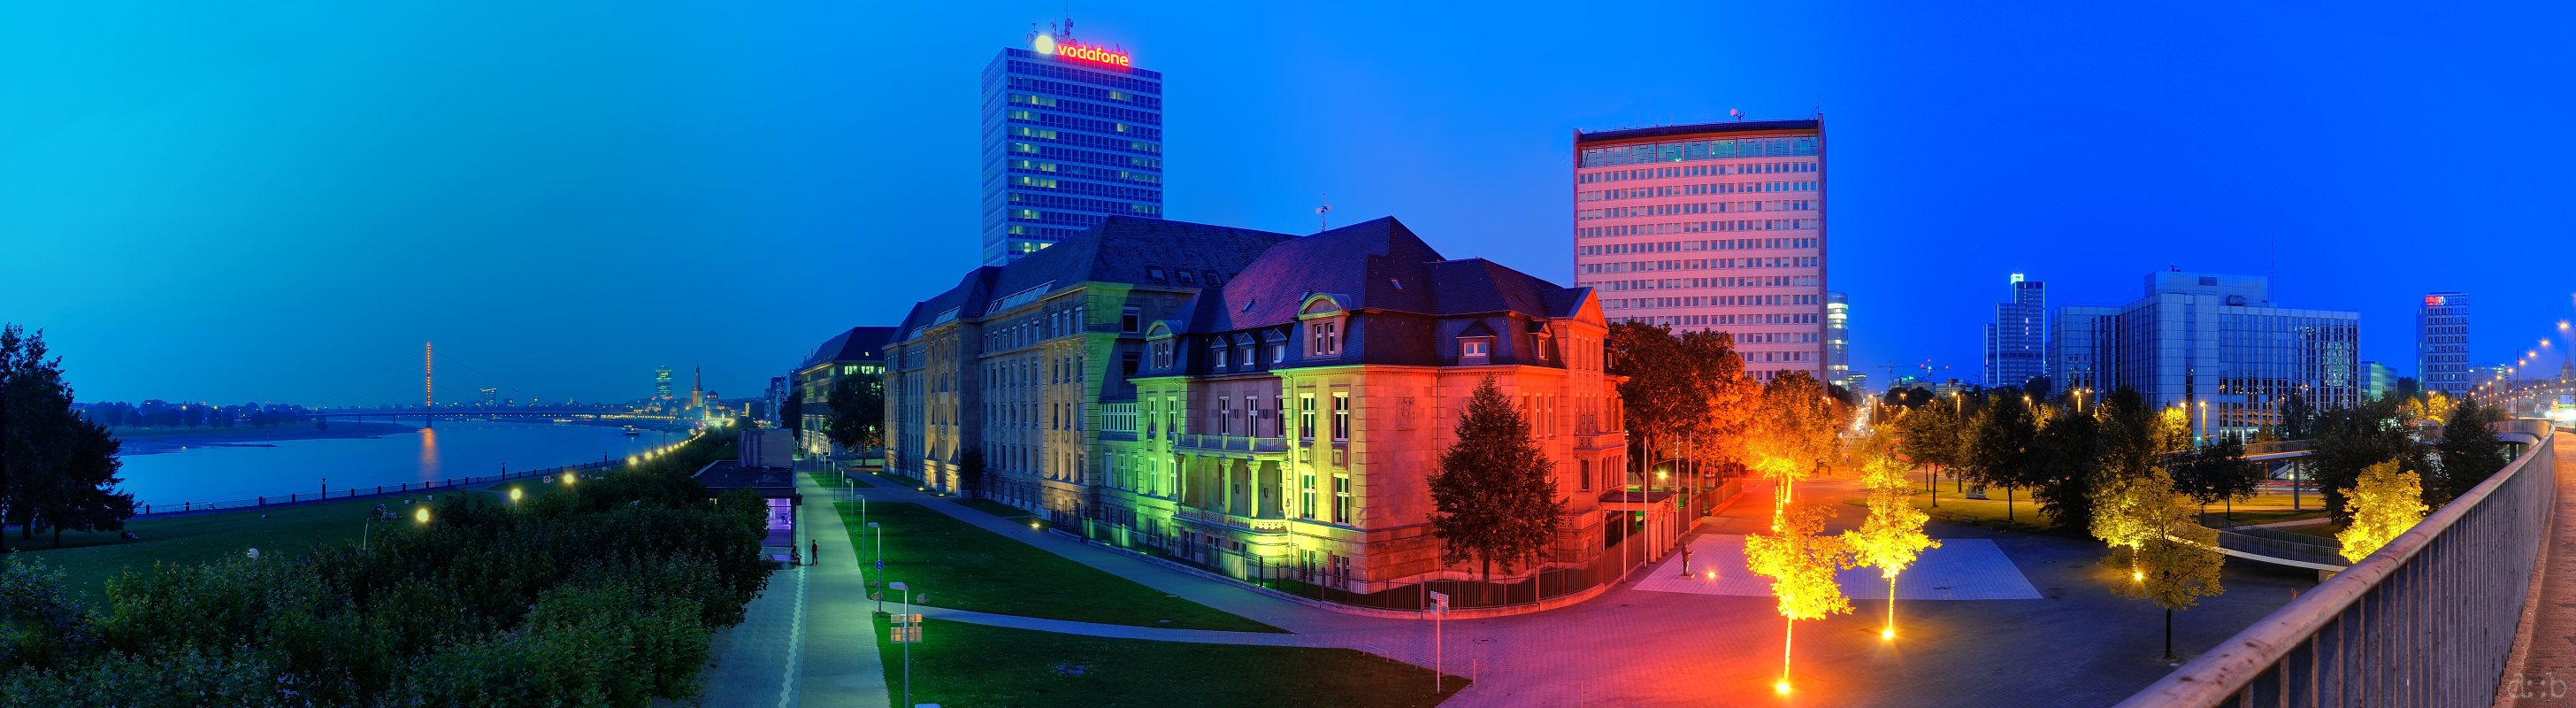 """Panorama of Düsseldorf's old town around the Rhine-side, colorfully illuminated in the """"blue hour"""":"""